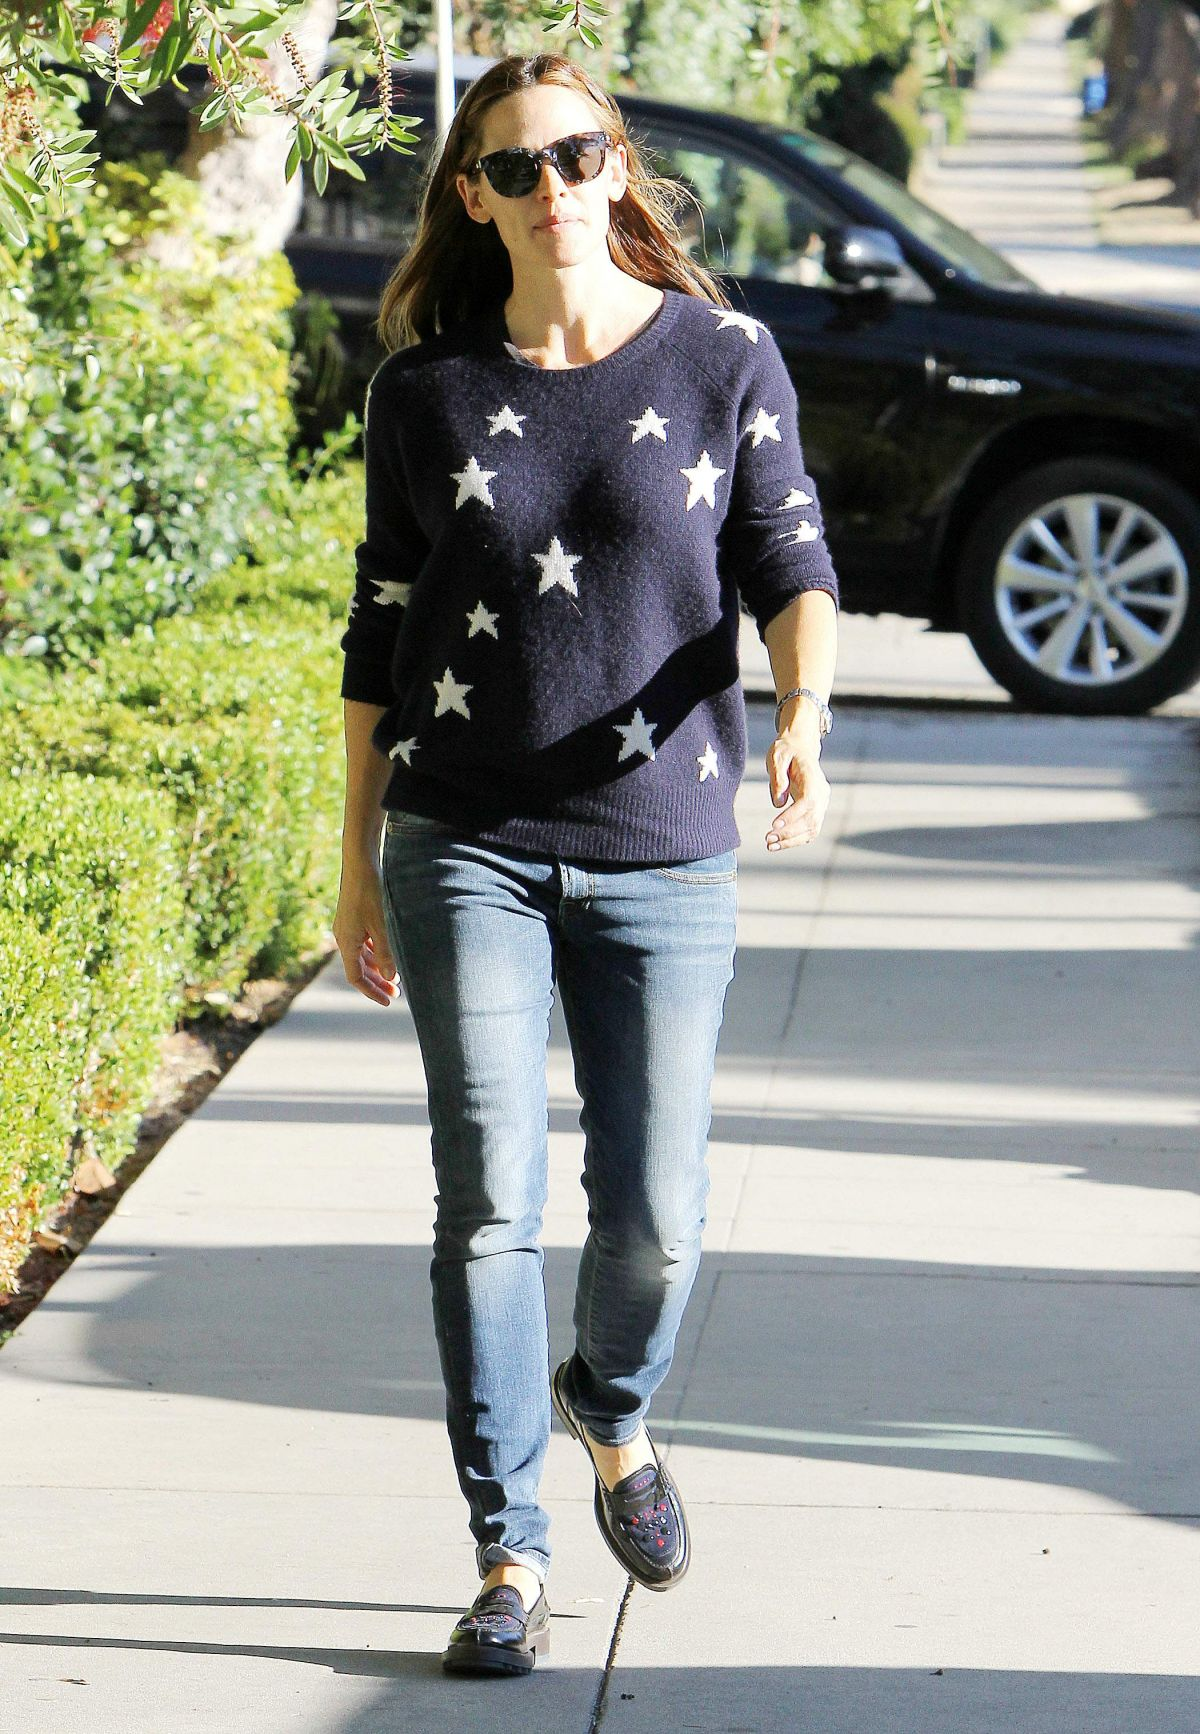 JENNIFER GARNER Out and About in Los Angeles 11/13/2015